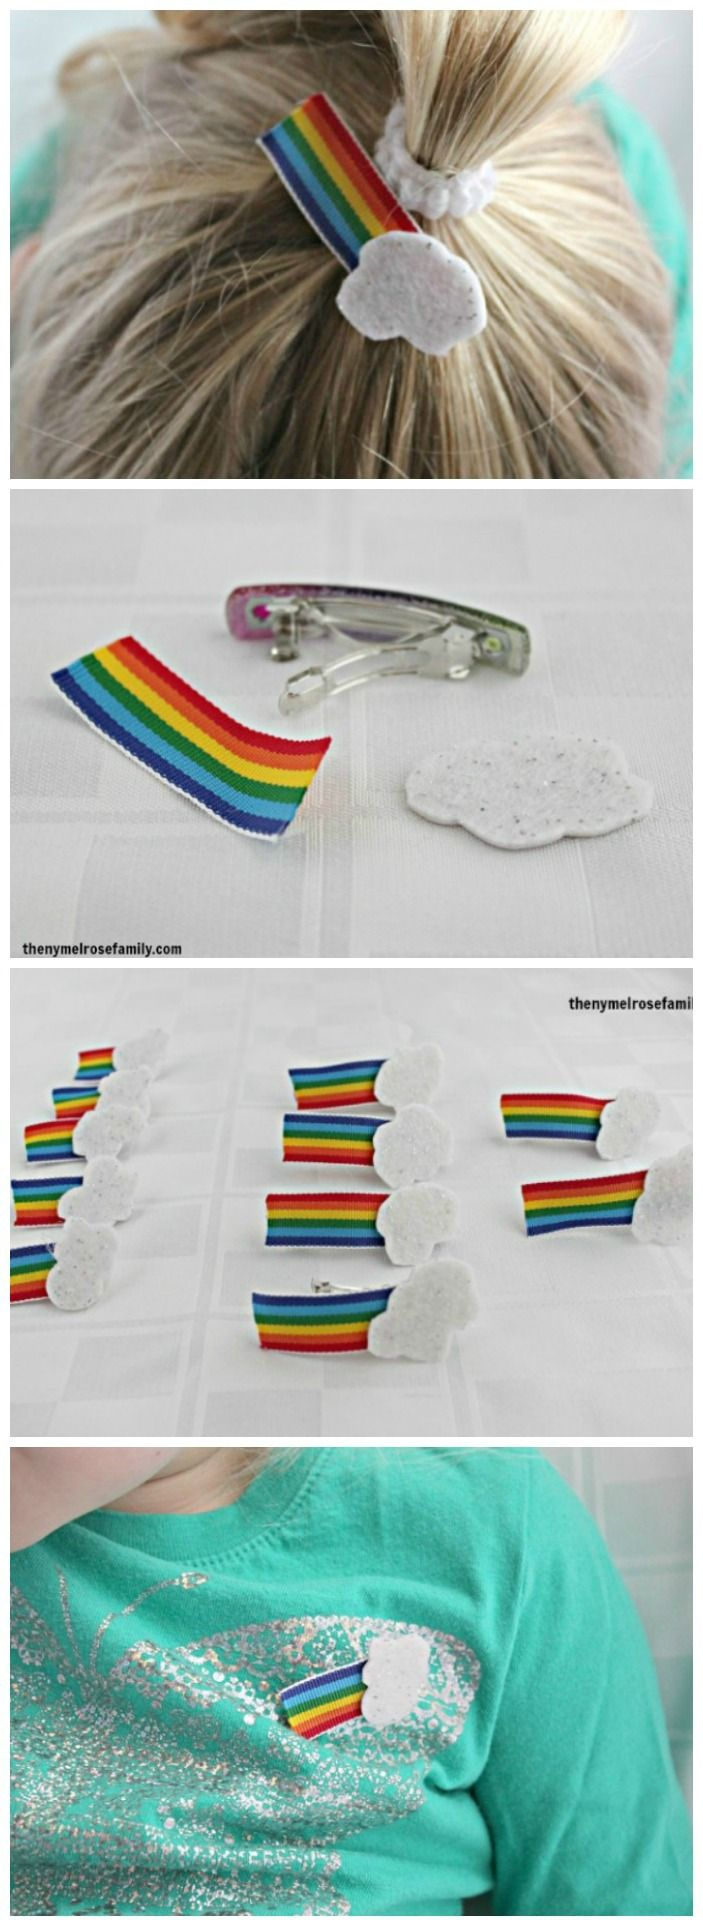 St. Patrick's Day Crafts: Rainbow Hair Clips & Pins